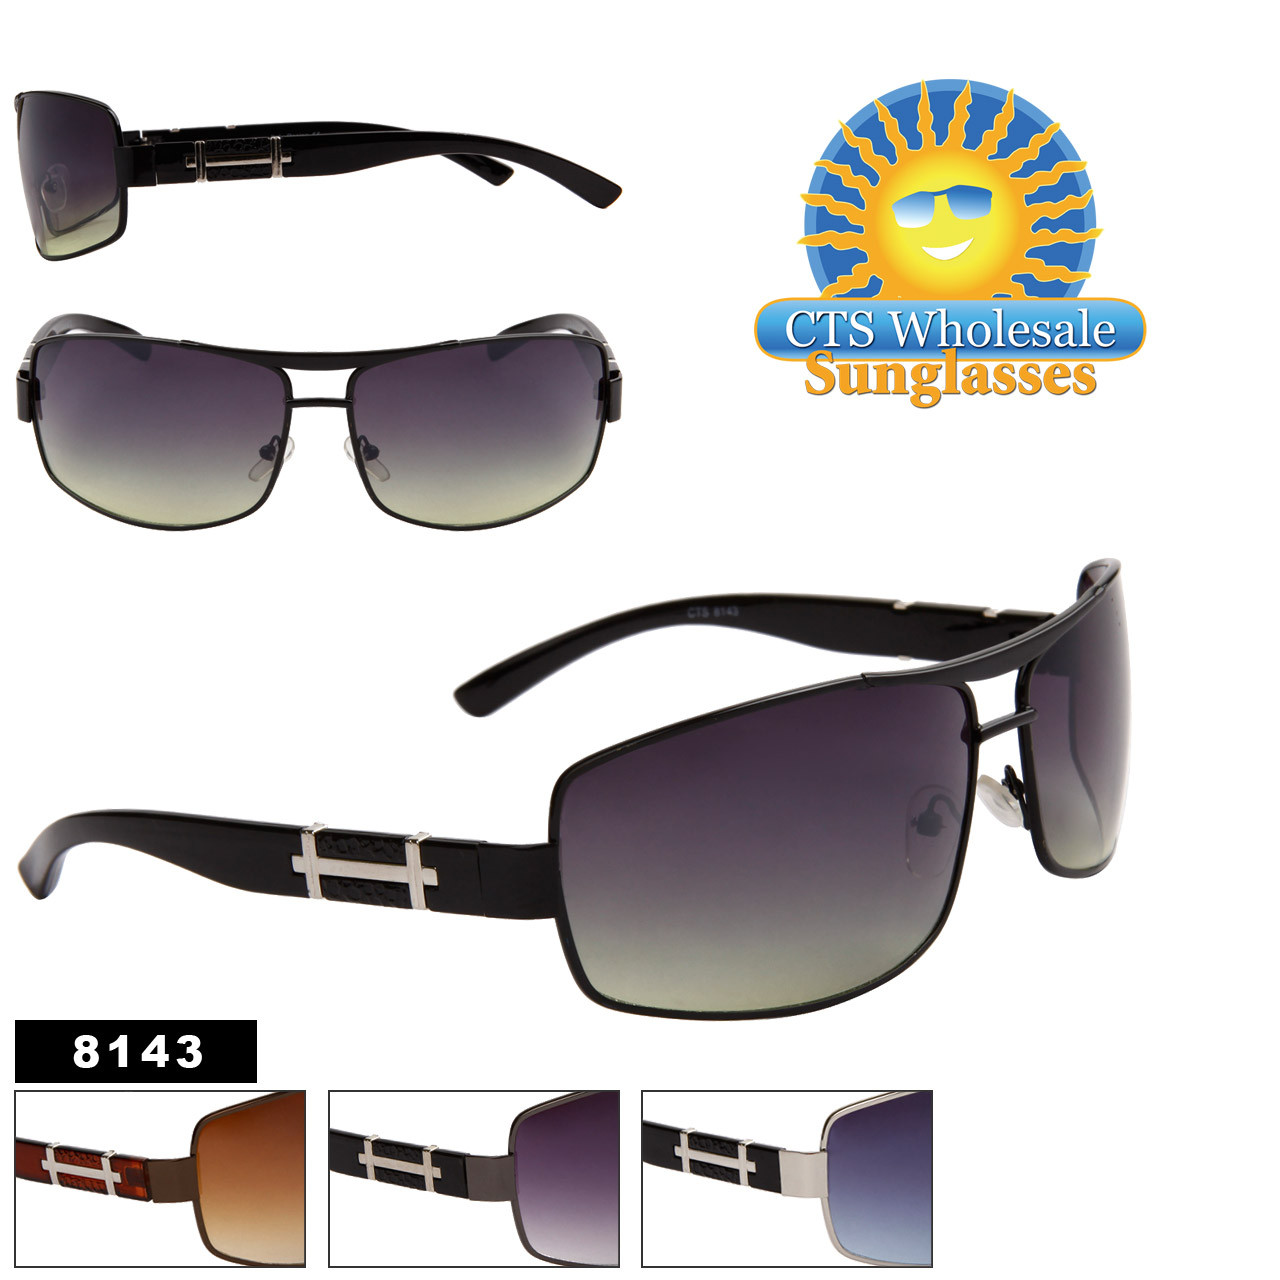 Metal Sunglasses Wholesale - 8143 (Assorted Colors) (12 pcs.)